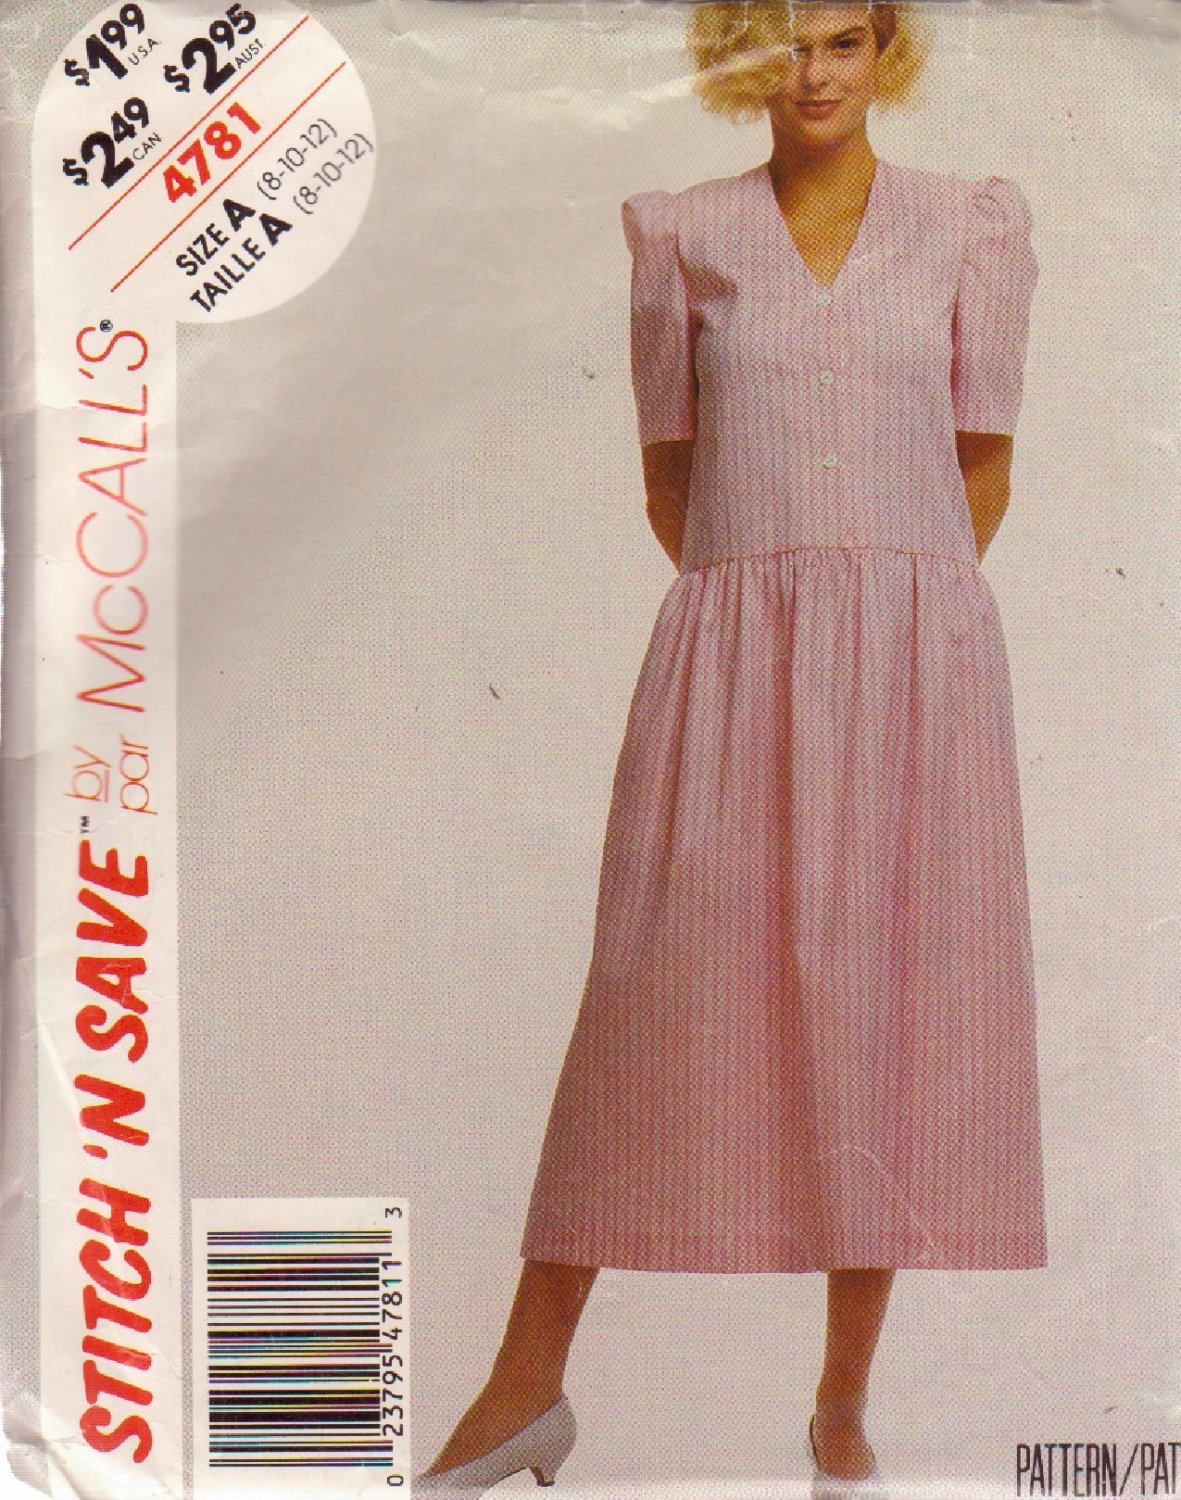 McCALL'S PATTERN 4781 SIZE 8 MISSES' DRESS